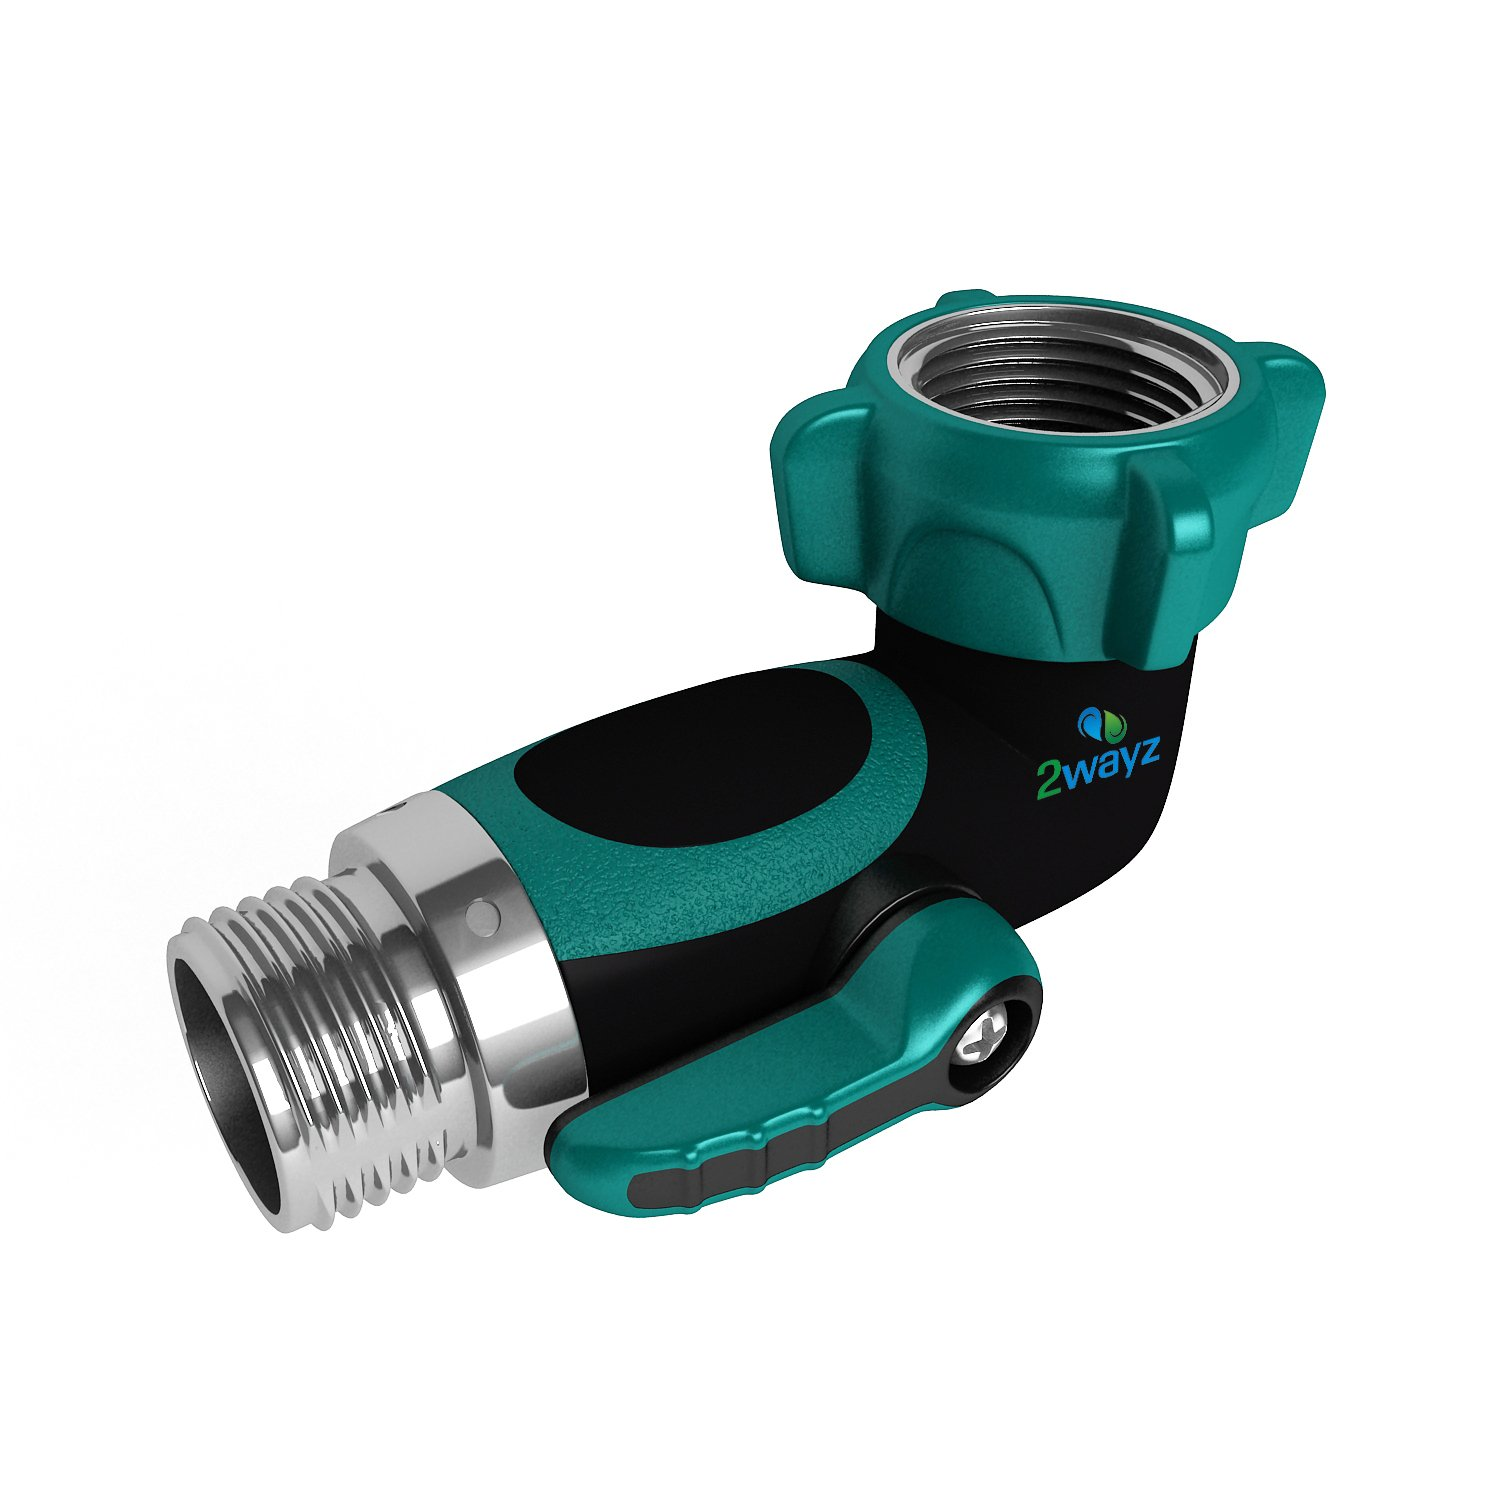 2wayz 90 Degree Garden Hose Elbow With Shut Off Valve. Free up space! Upgraded 2017 Full Metal Bolted and Threaded Spigot Extender. Perfect for RVs. Ergonomic, Lead Free, Family Safe Adapter